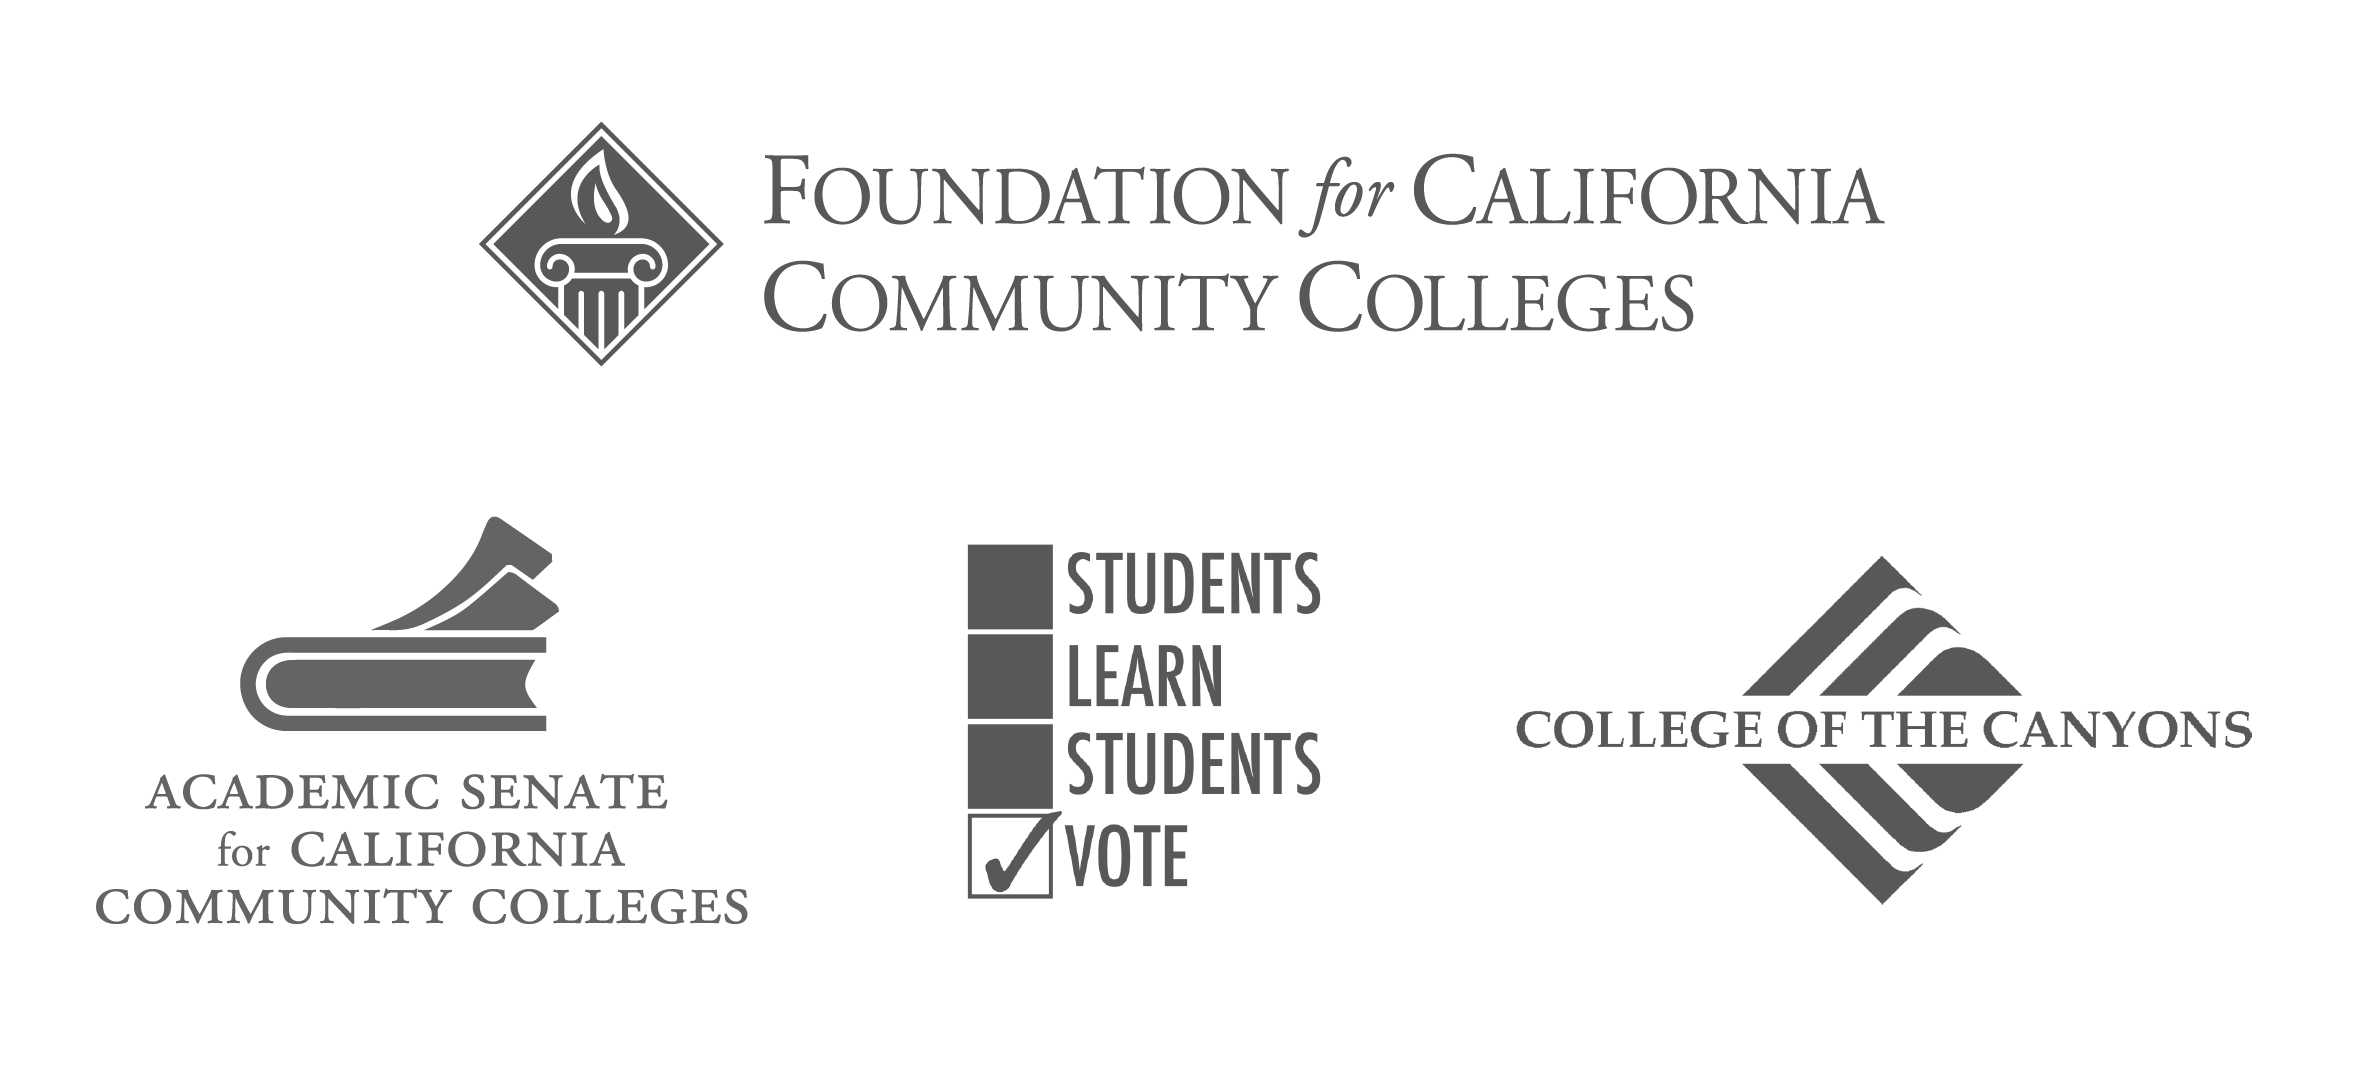 Logos of the Foundation for California Community Colleges, the Academic Senate for California Community Colleges, Students Learn Students Vote, and the College of the Canyons